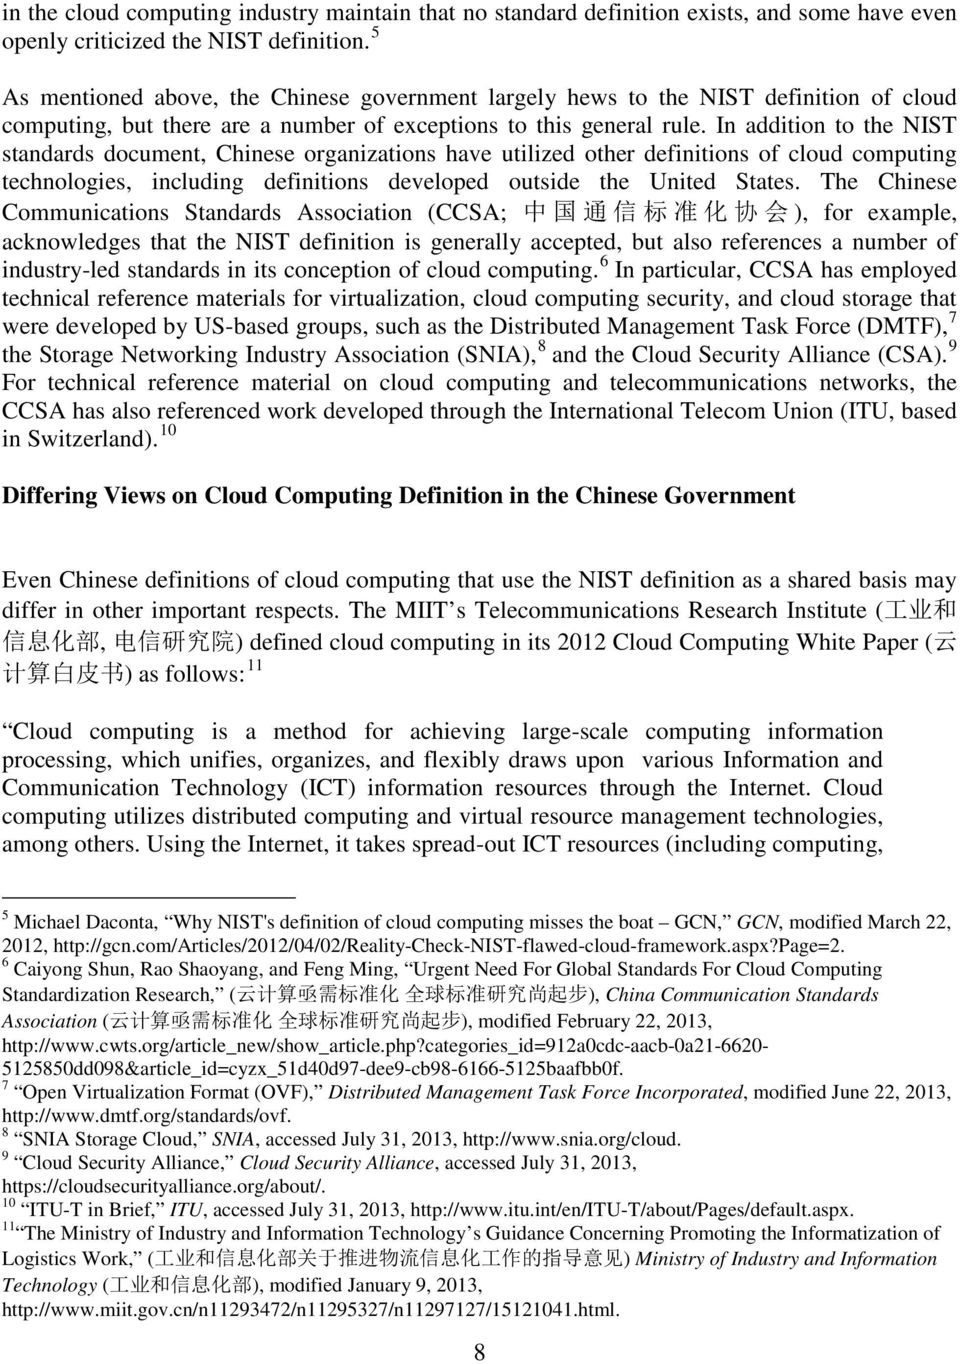 In addition to the NIST standards document, Chinese organizations have utilized other definitions of cloud computing technologies, including definitions developed outside the United States.